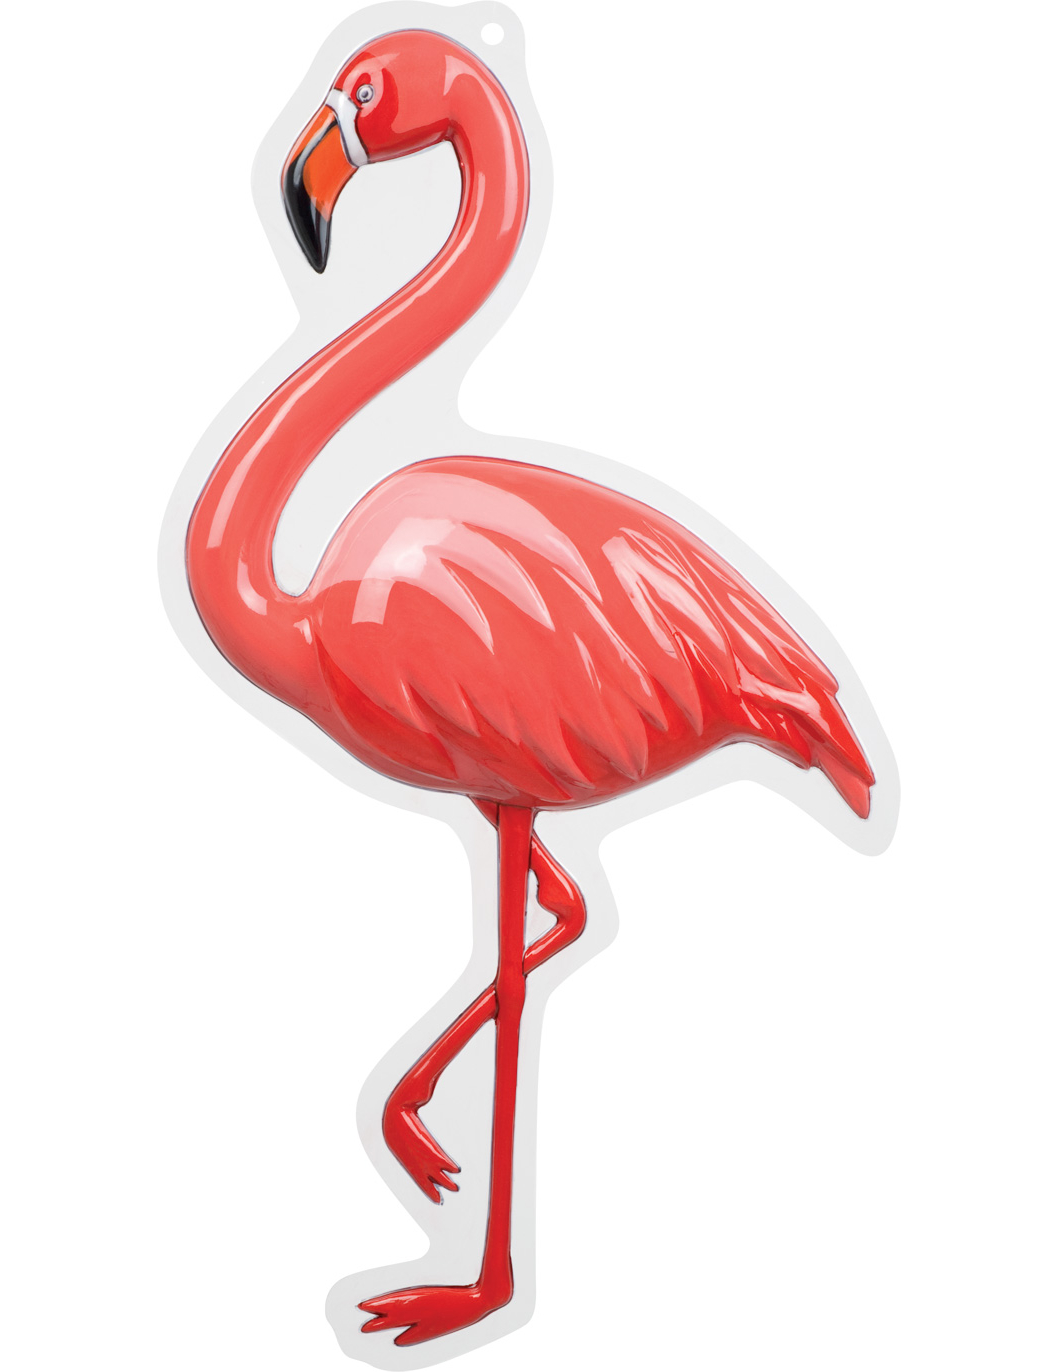 Decoration flamant rose id es de d coration et de mobilier pour la concepti - Flamant rose decoration ...